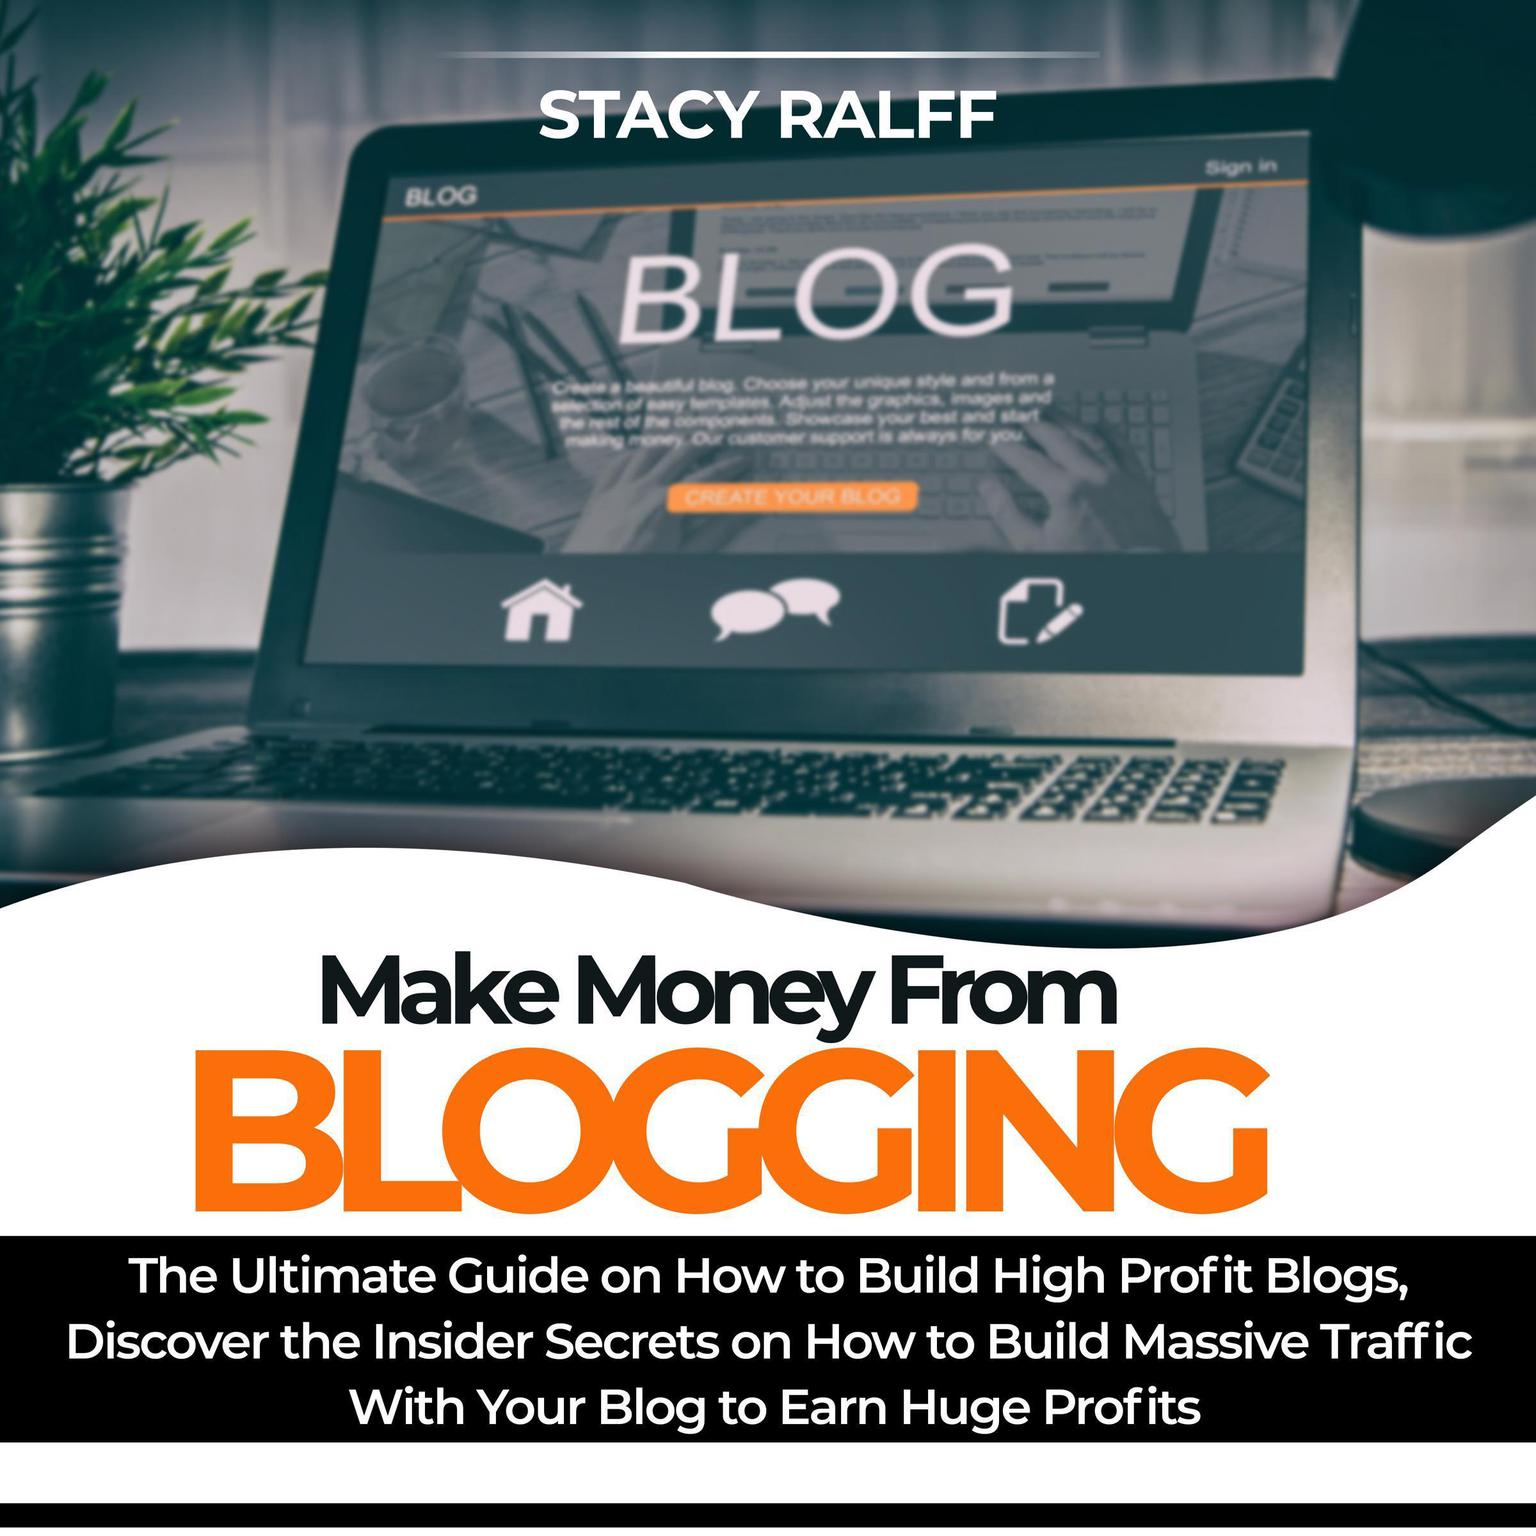 Make Money From Blogging: The Ultimate Guide on How to Build High Profit Blogs, Discover the Insider Secrets on How to Build Massive Traffic With Your Blog to Earn Huge Profits Audiobook, by Stacy Ralff